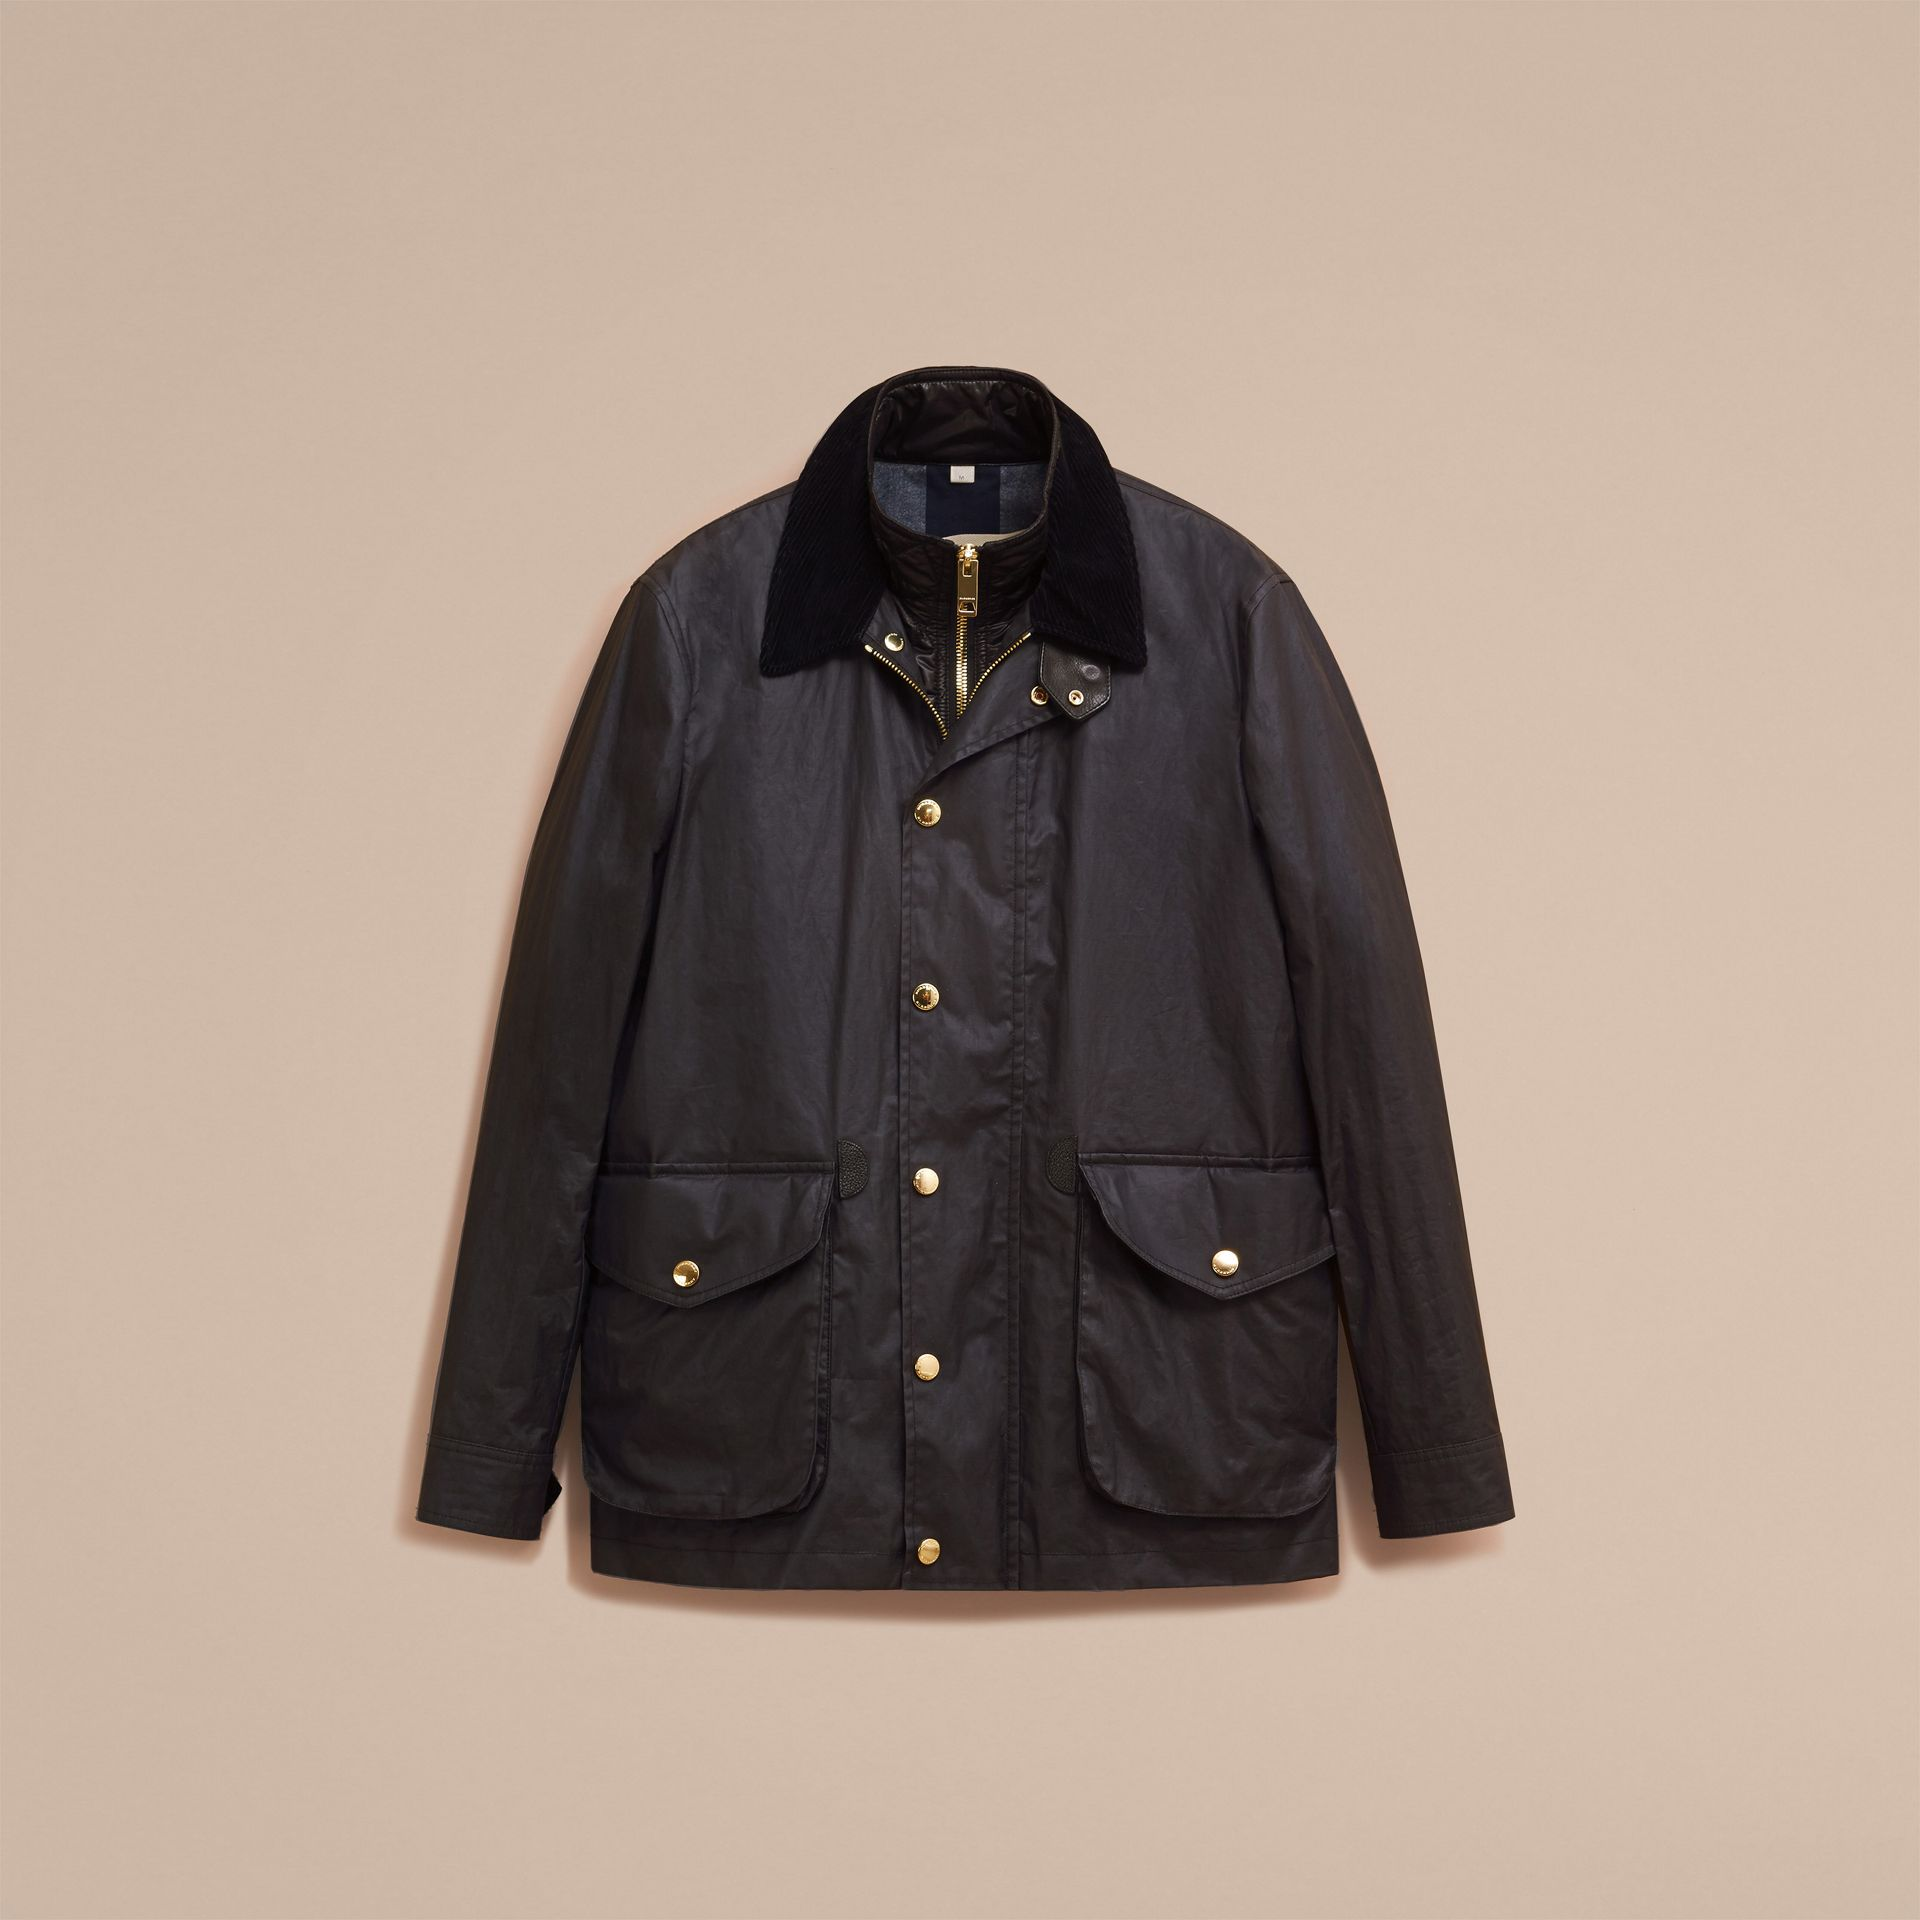 Dark navy Waxed Cotton Linen Jacket with Detachable Warmer - gallery image 4